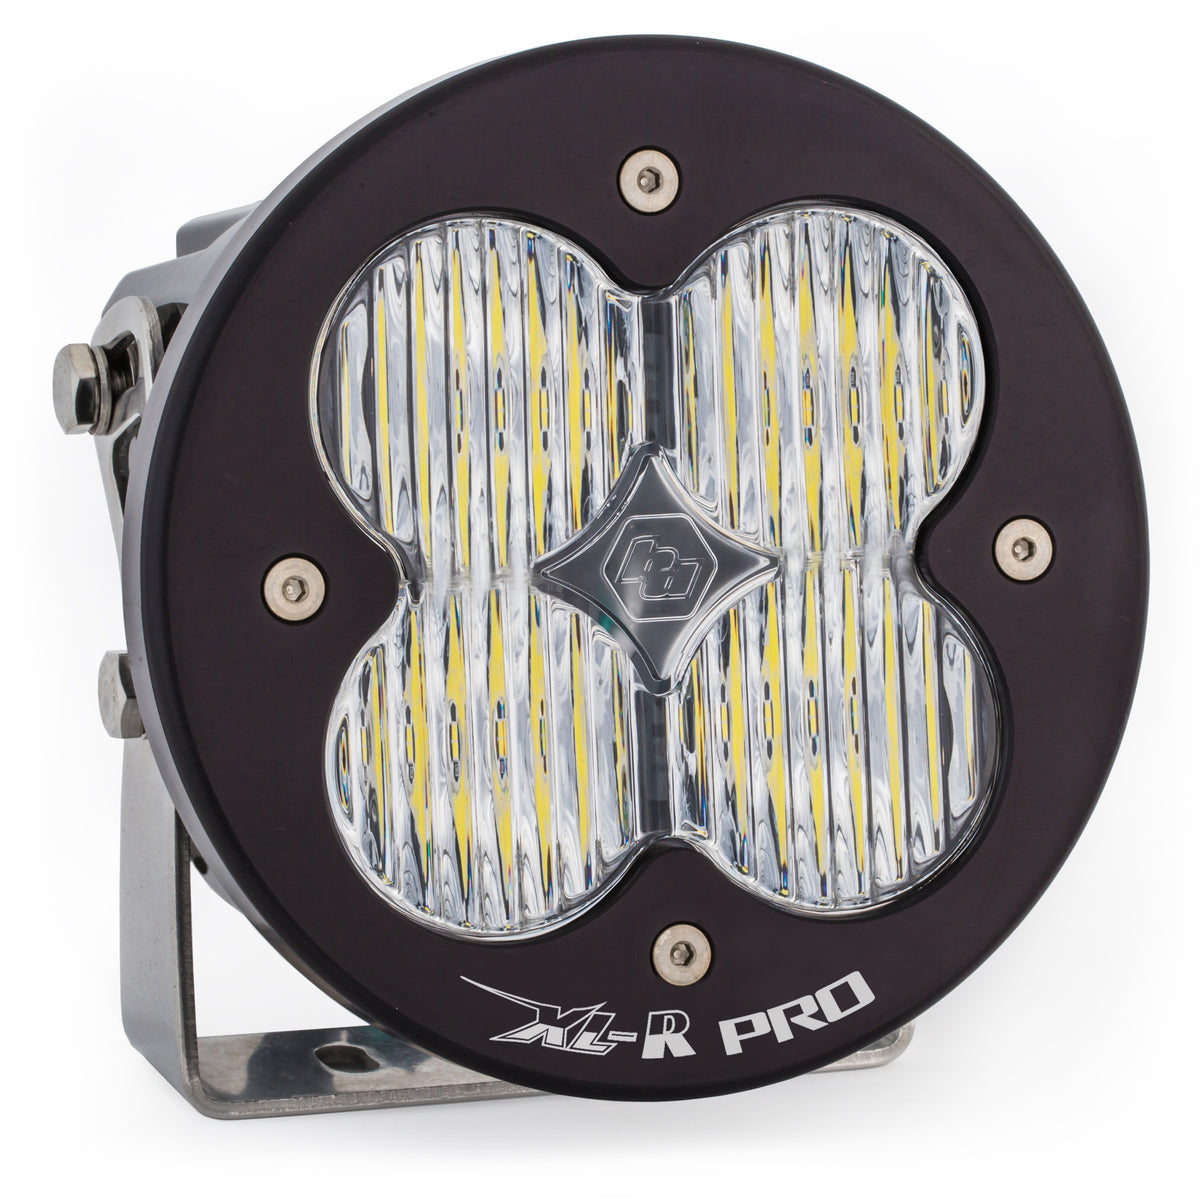 Baja Designs XL-R Pro LED Light